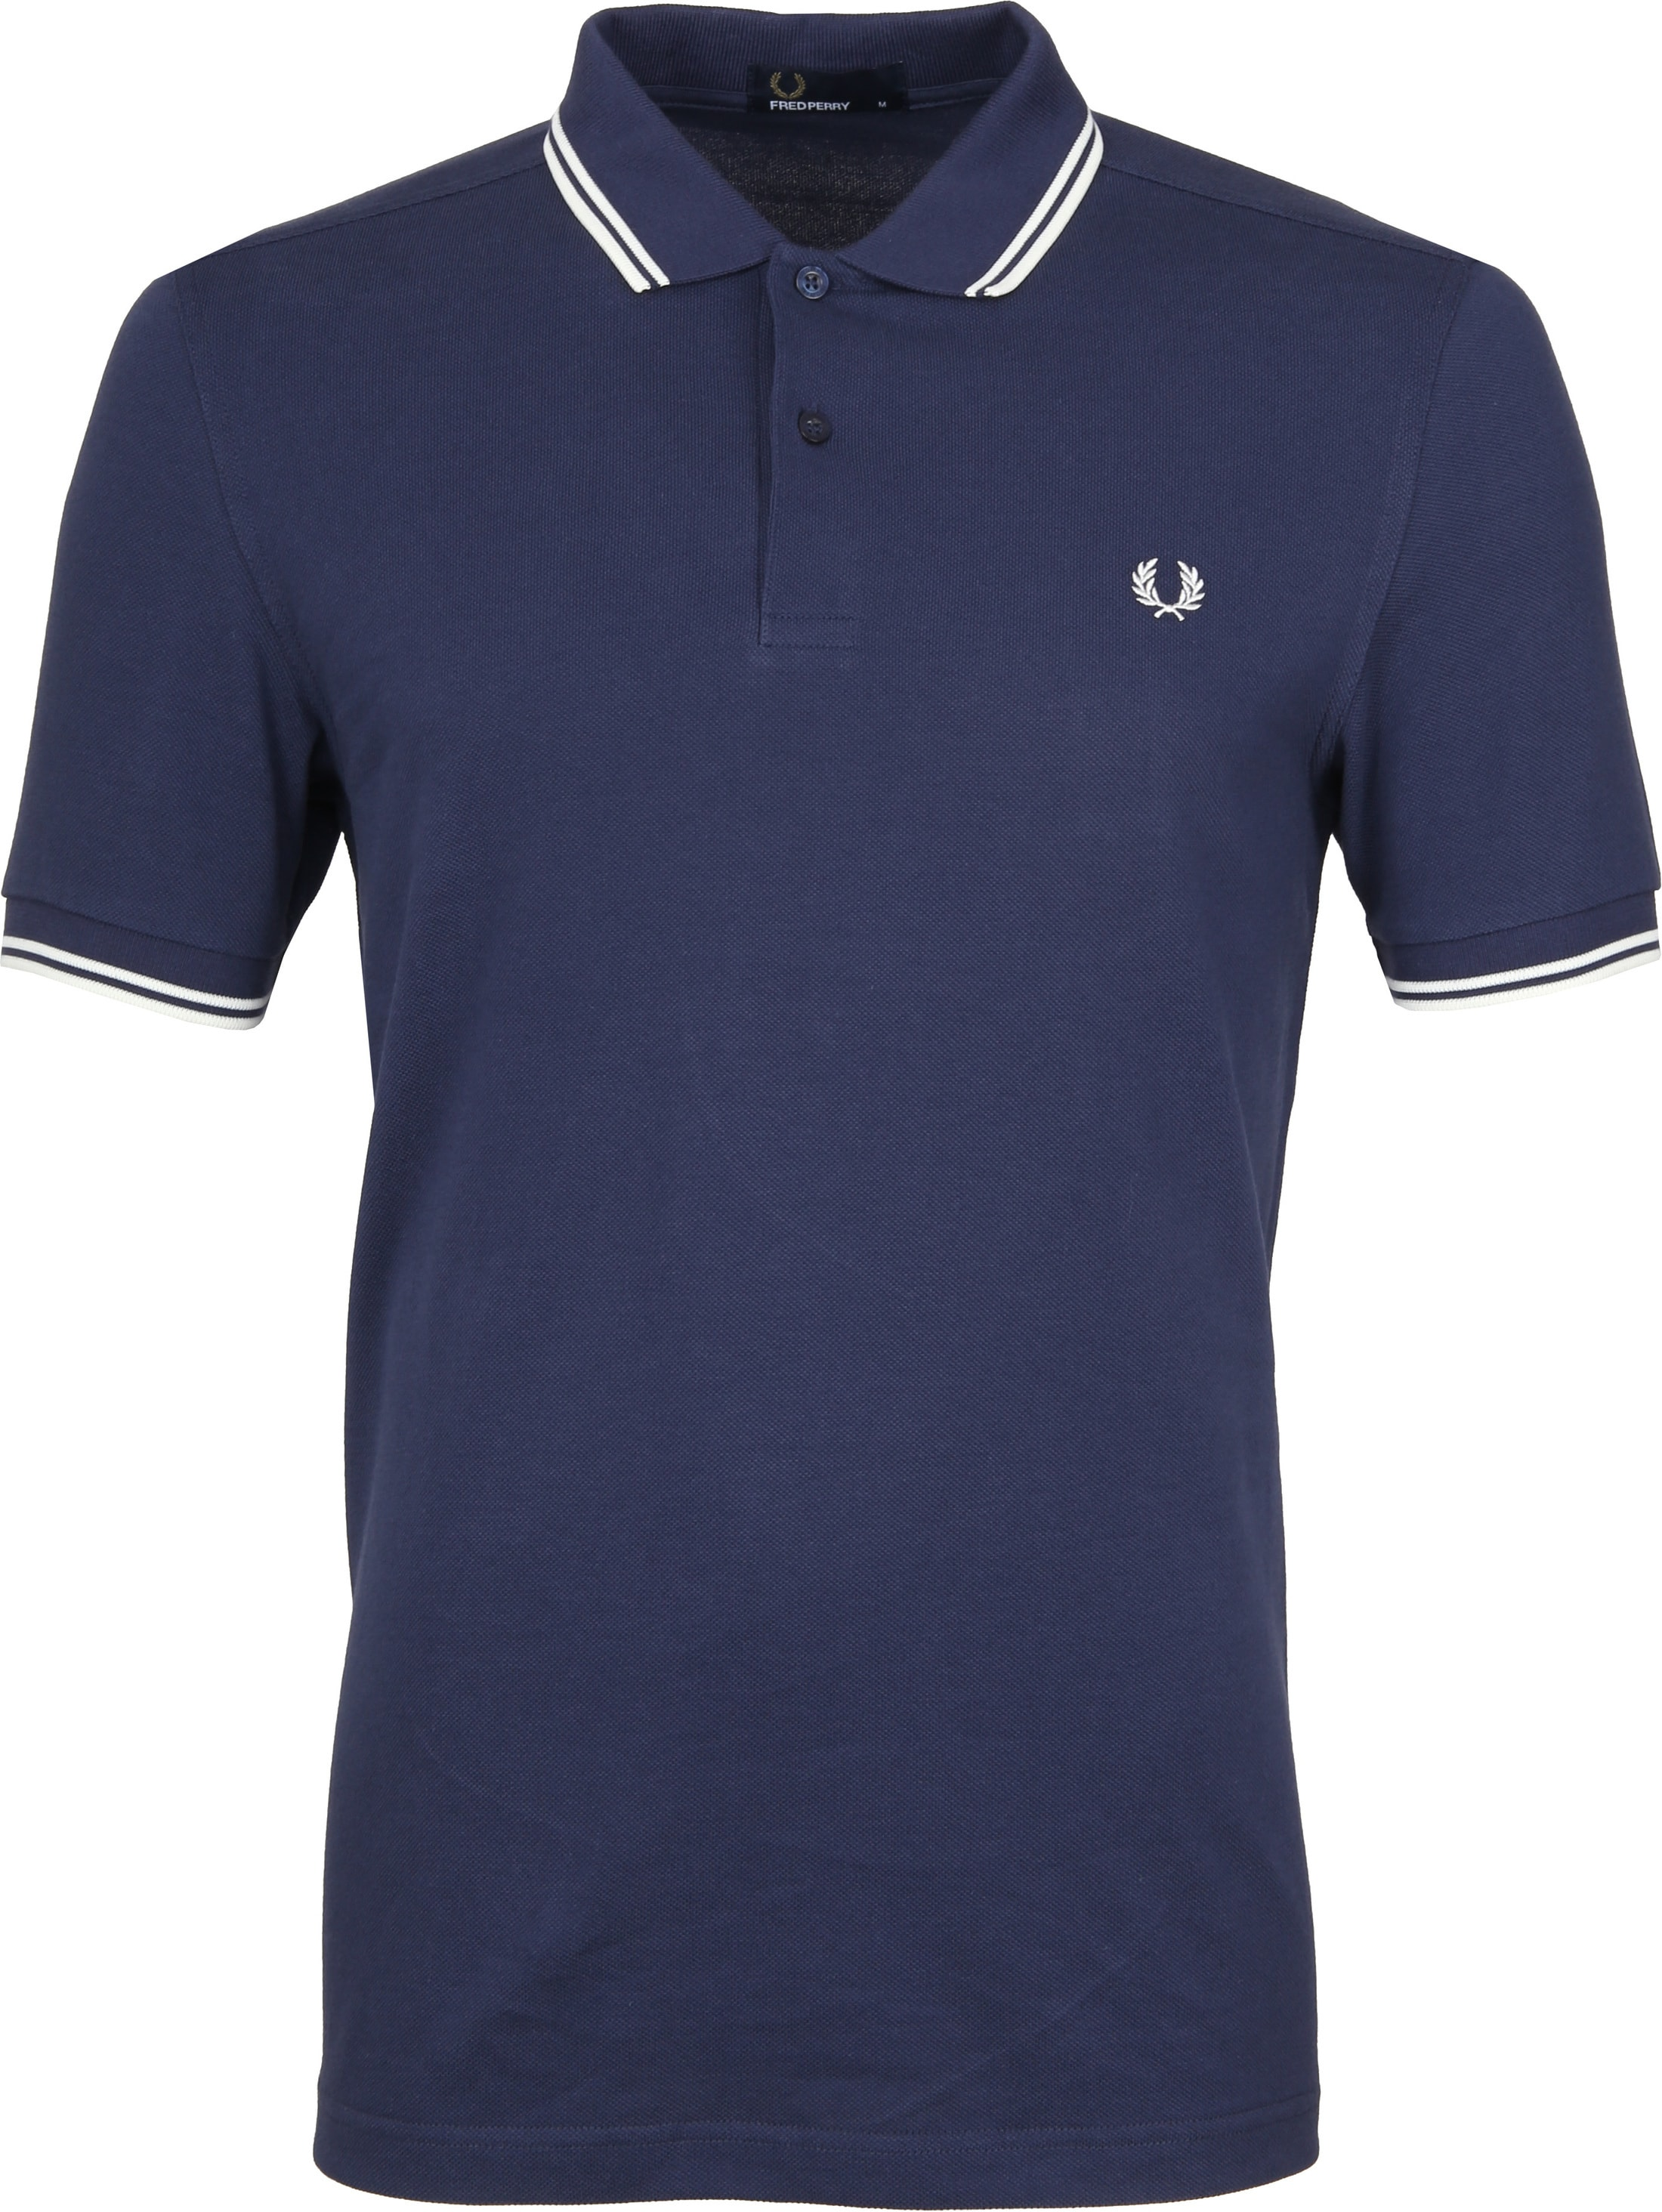 Fred Perry Poloshirt Navy H39 foto 0